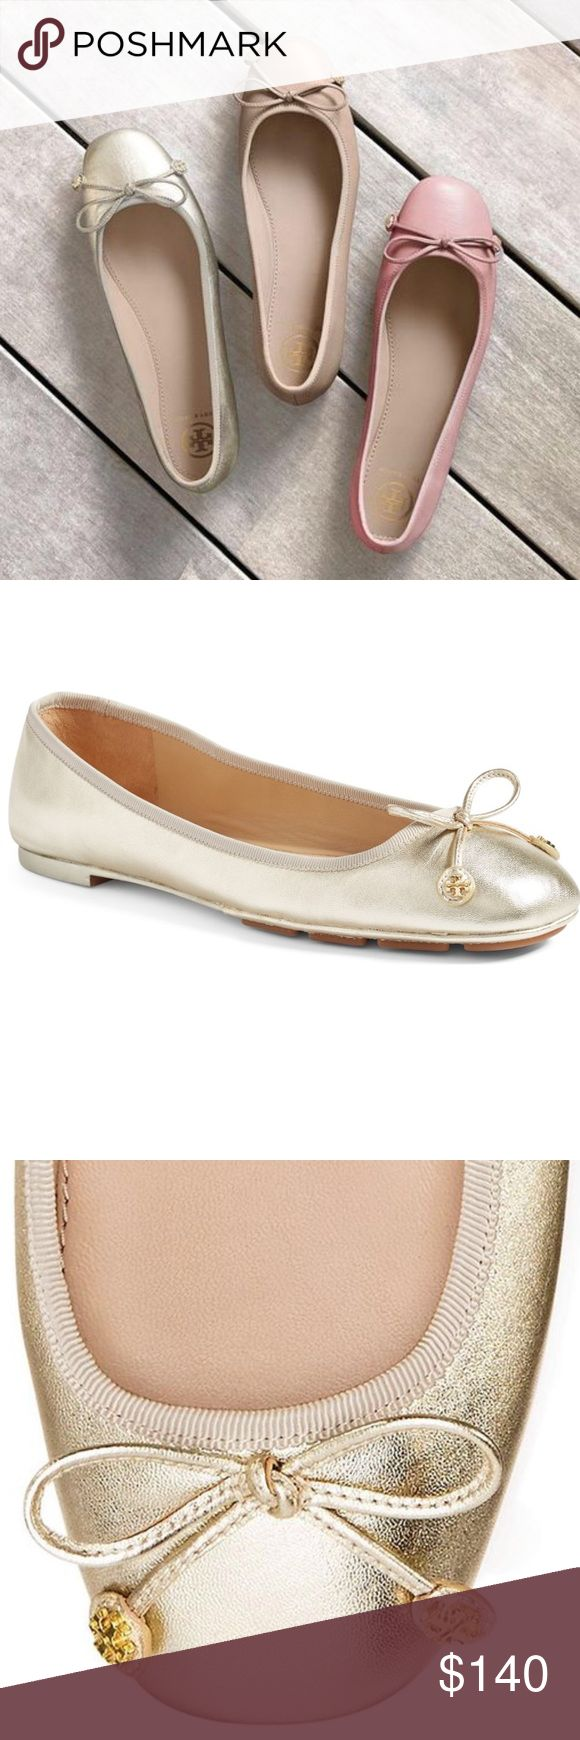 TB 'Laila' Ballet Flats Metallic gold ballet shoes with the comfort and traction of a driver shoe (rubber pods at the front of sole). 7.5 Fits true to size. New in box, never worn. Tory Burch Shoes Flats & Loafers